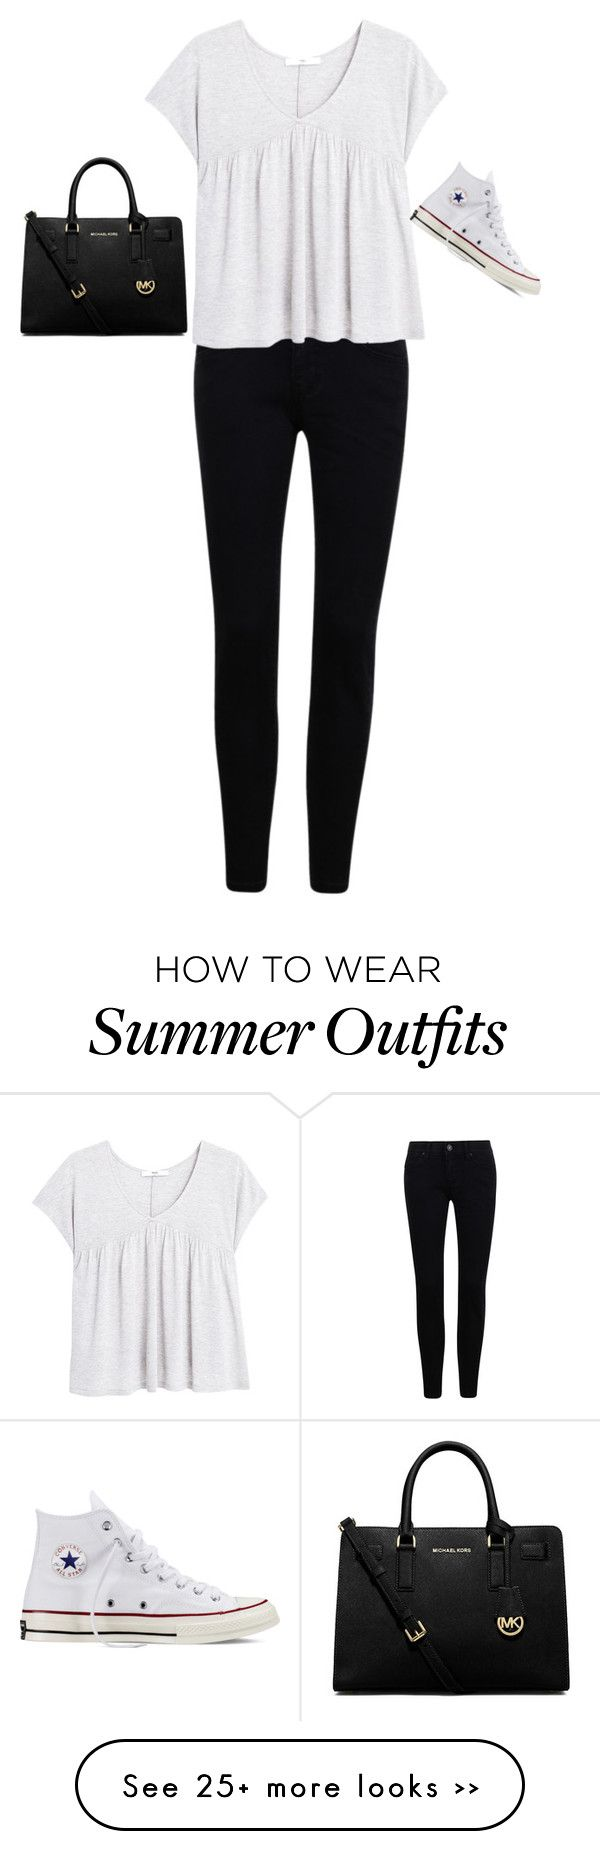 """""""Casual Black and White Summer Outfit"""" by aecheccone on Polyvore featuring moda, MANGO, MICHAEL Michael Kors e Converse"""